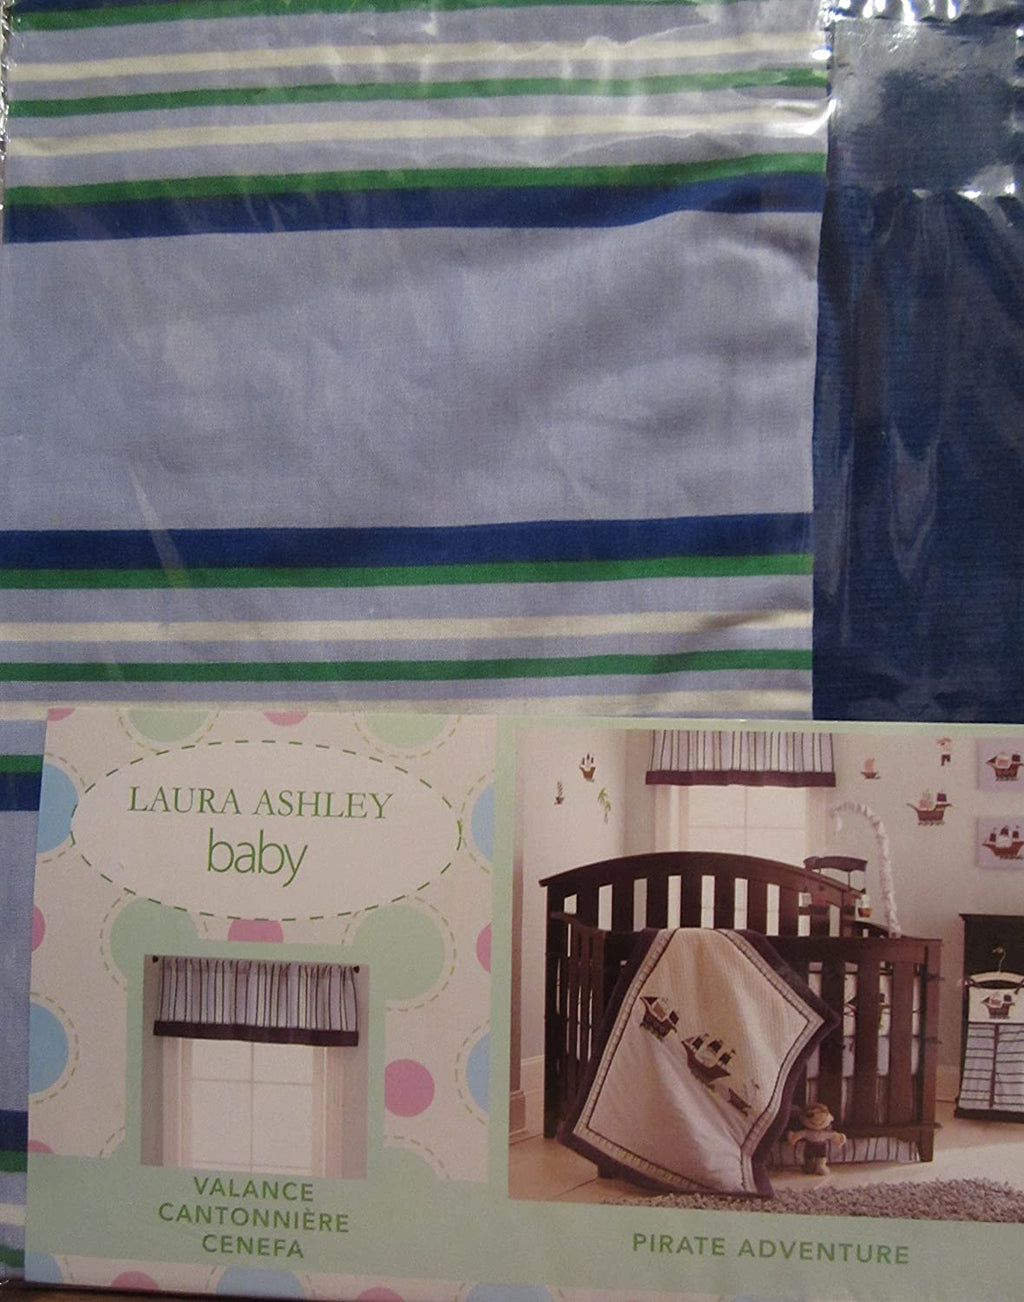 Laura Ashley® Pirate Adventure Blue Green White Striped Window Valance